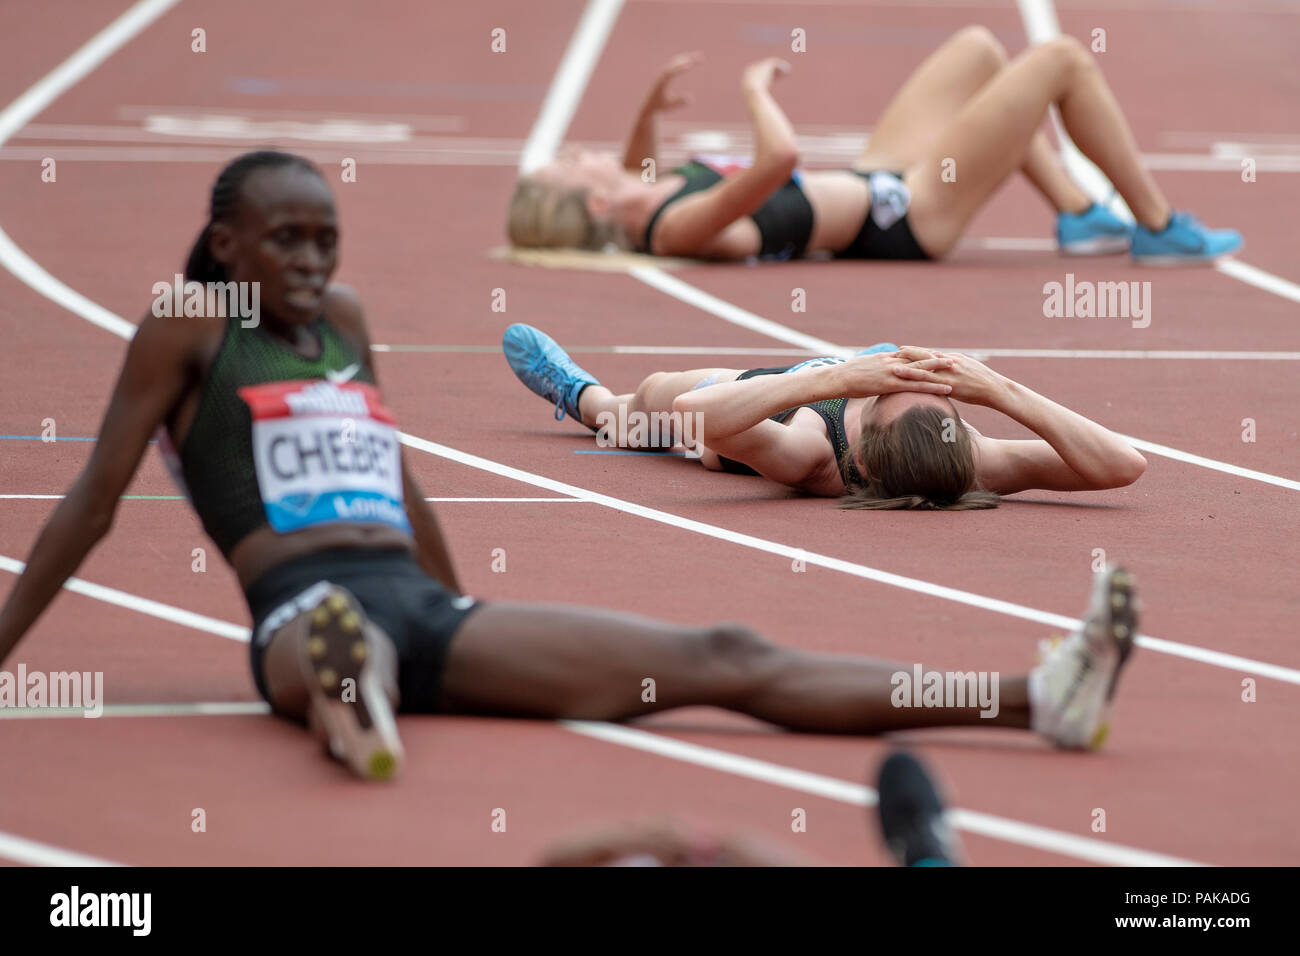 London, UK. 22nd July 2018. Laura Muir (GBR) collapsed on the track with other athletes after the Millicent Fawcett Mile at the Muller Anniversary Games at the London Stadium, London, Great Britiain, on 22 July 2018. Credit: Andrew Peat/Alamy Live News - Stock Image